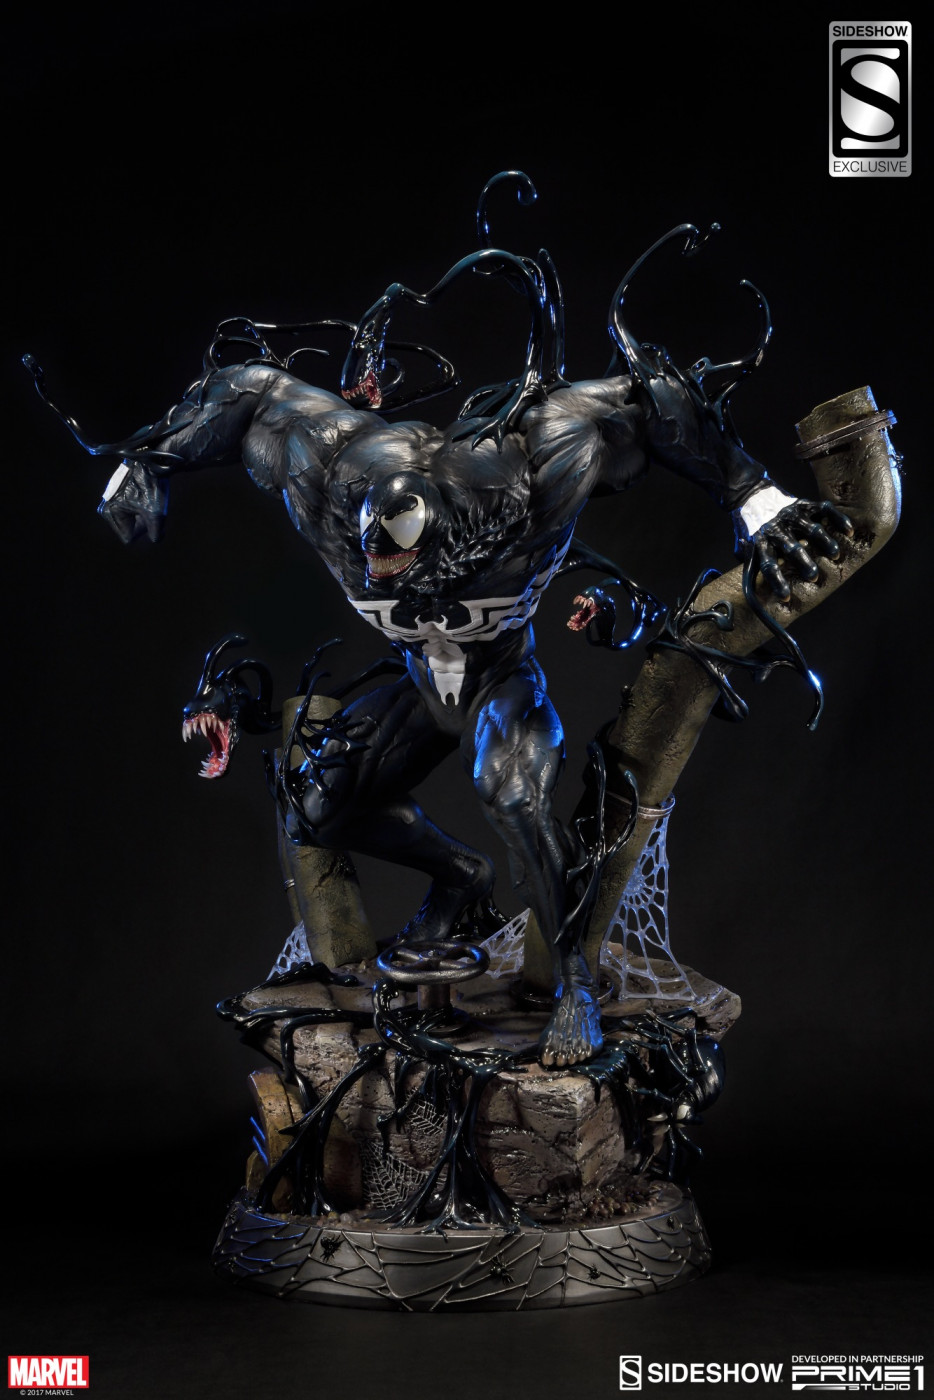 Premium Masterline Venom: Dark Origin Venom EX Version